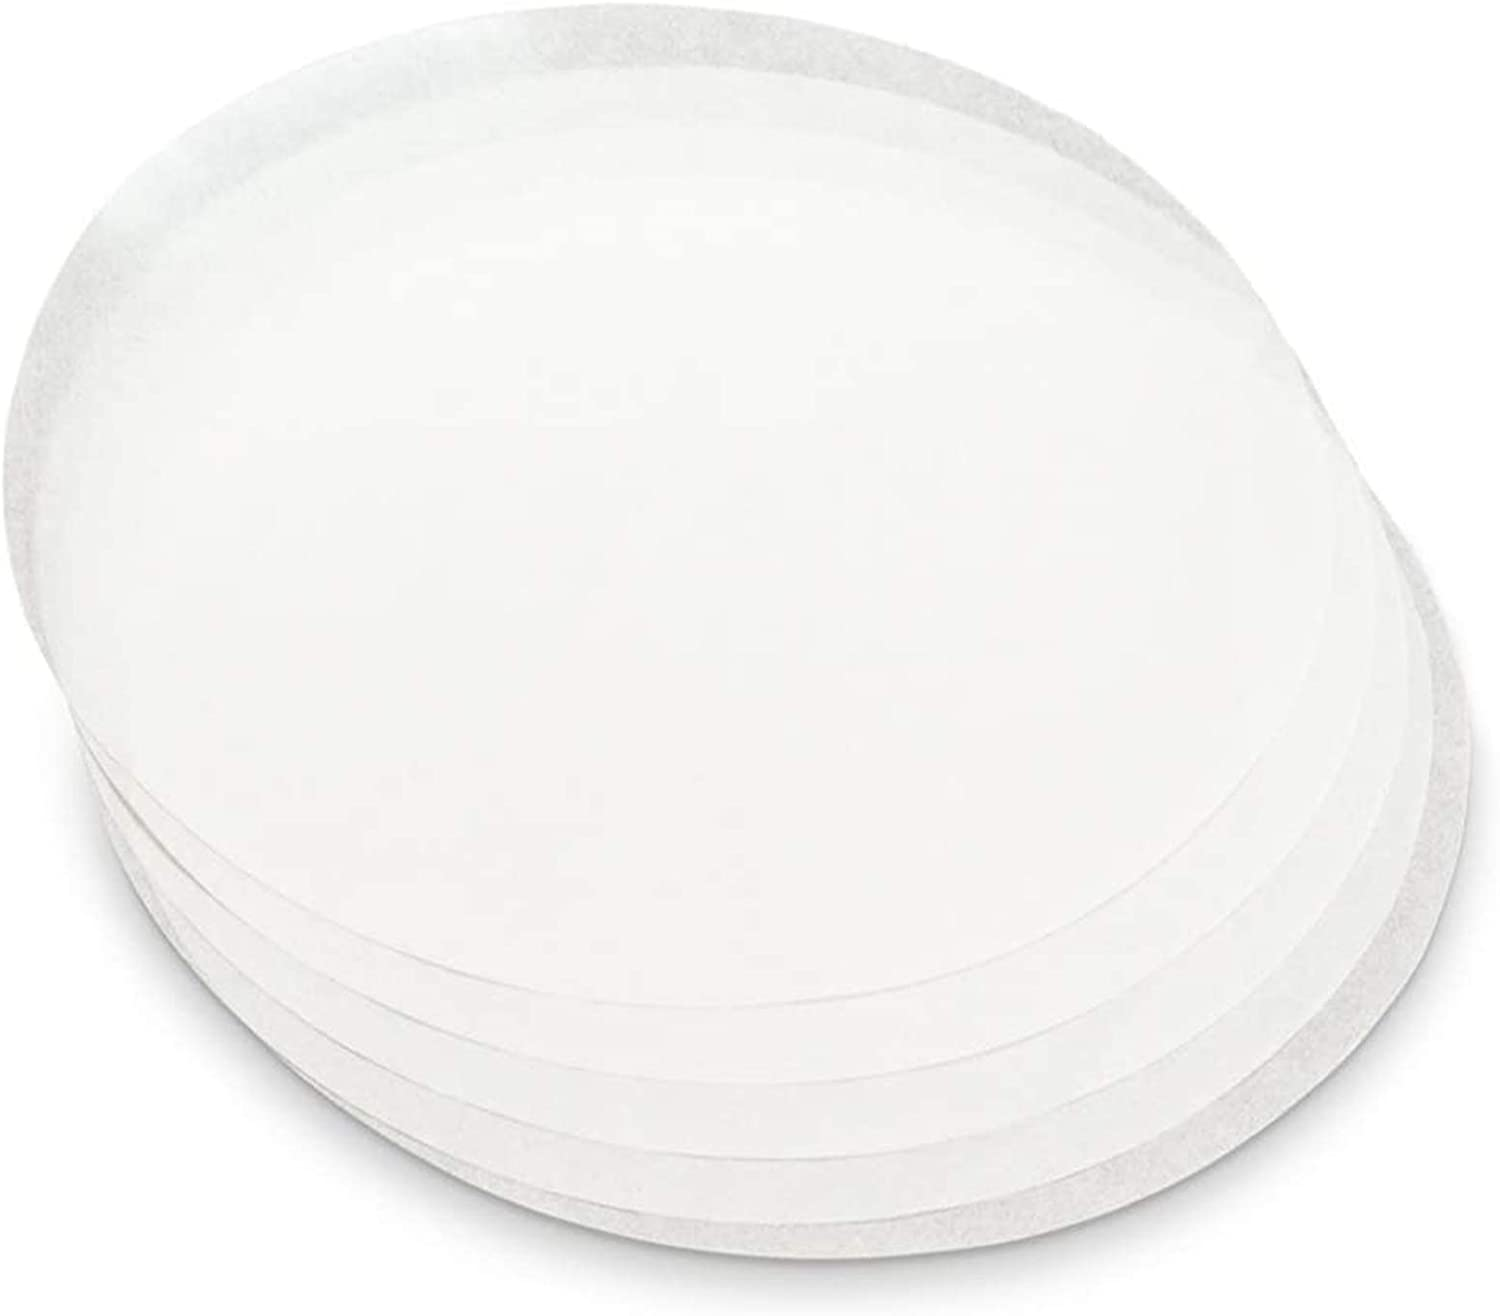 50 Parchment Paper Rounds 8 Inch Precut White Circle Baking Sheets Made In USA Non Stick Wax Liners for Round Cake Pans, Air Fryer, Cake Tin, Toaster Oven, Microwave Oven and Cookie Box